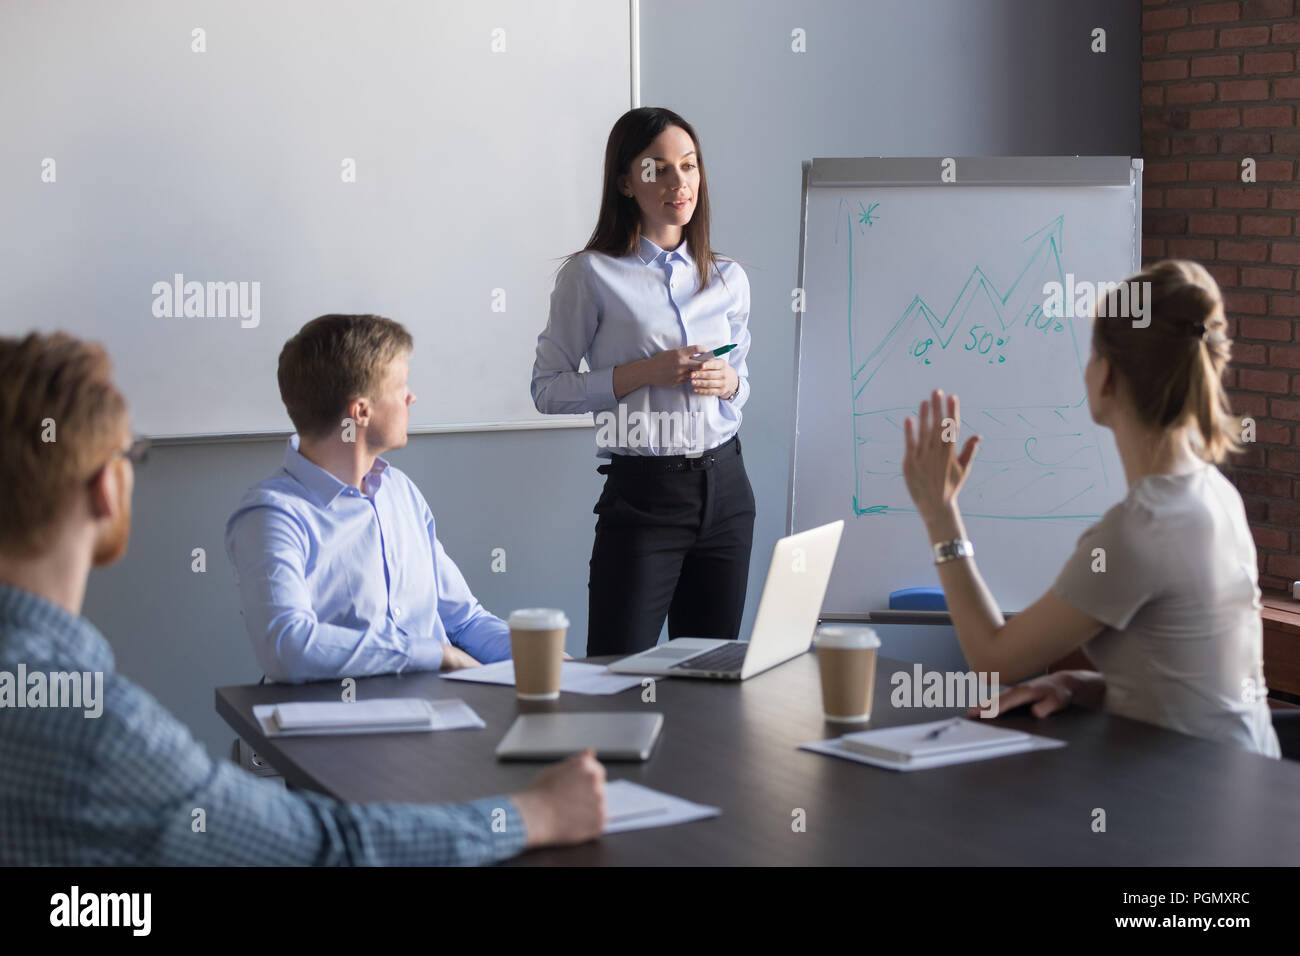 Female employee asking question to business speaker during metin - Stock Image